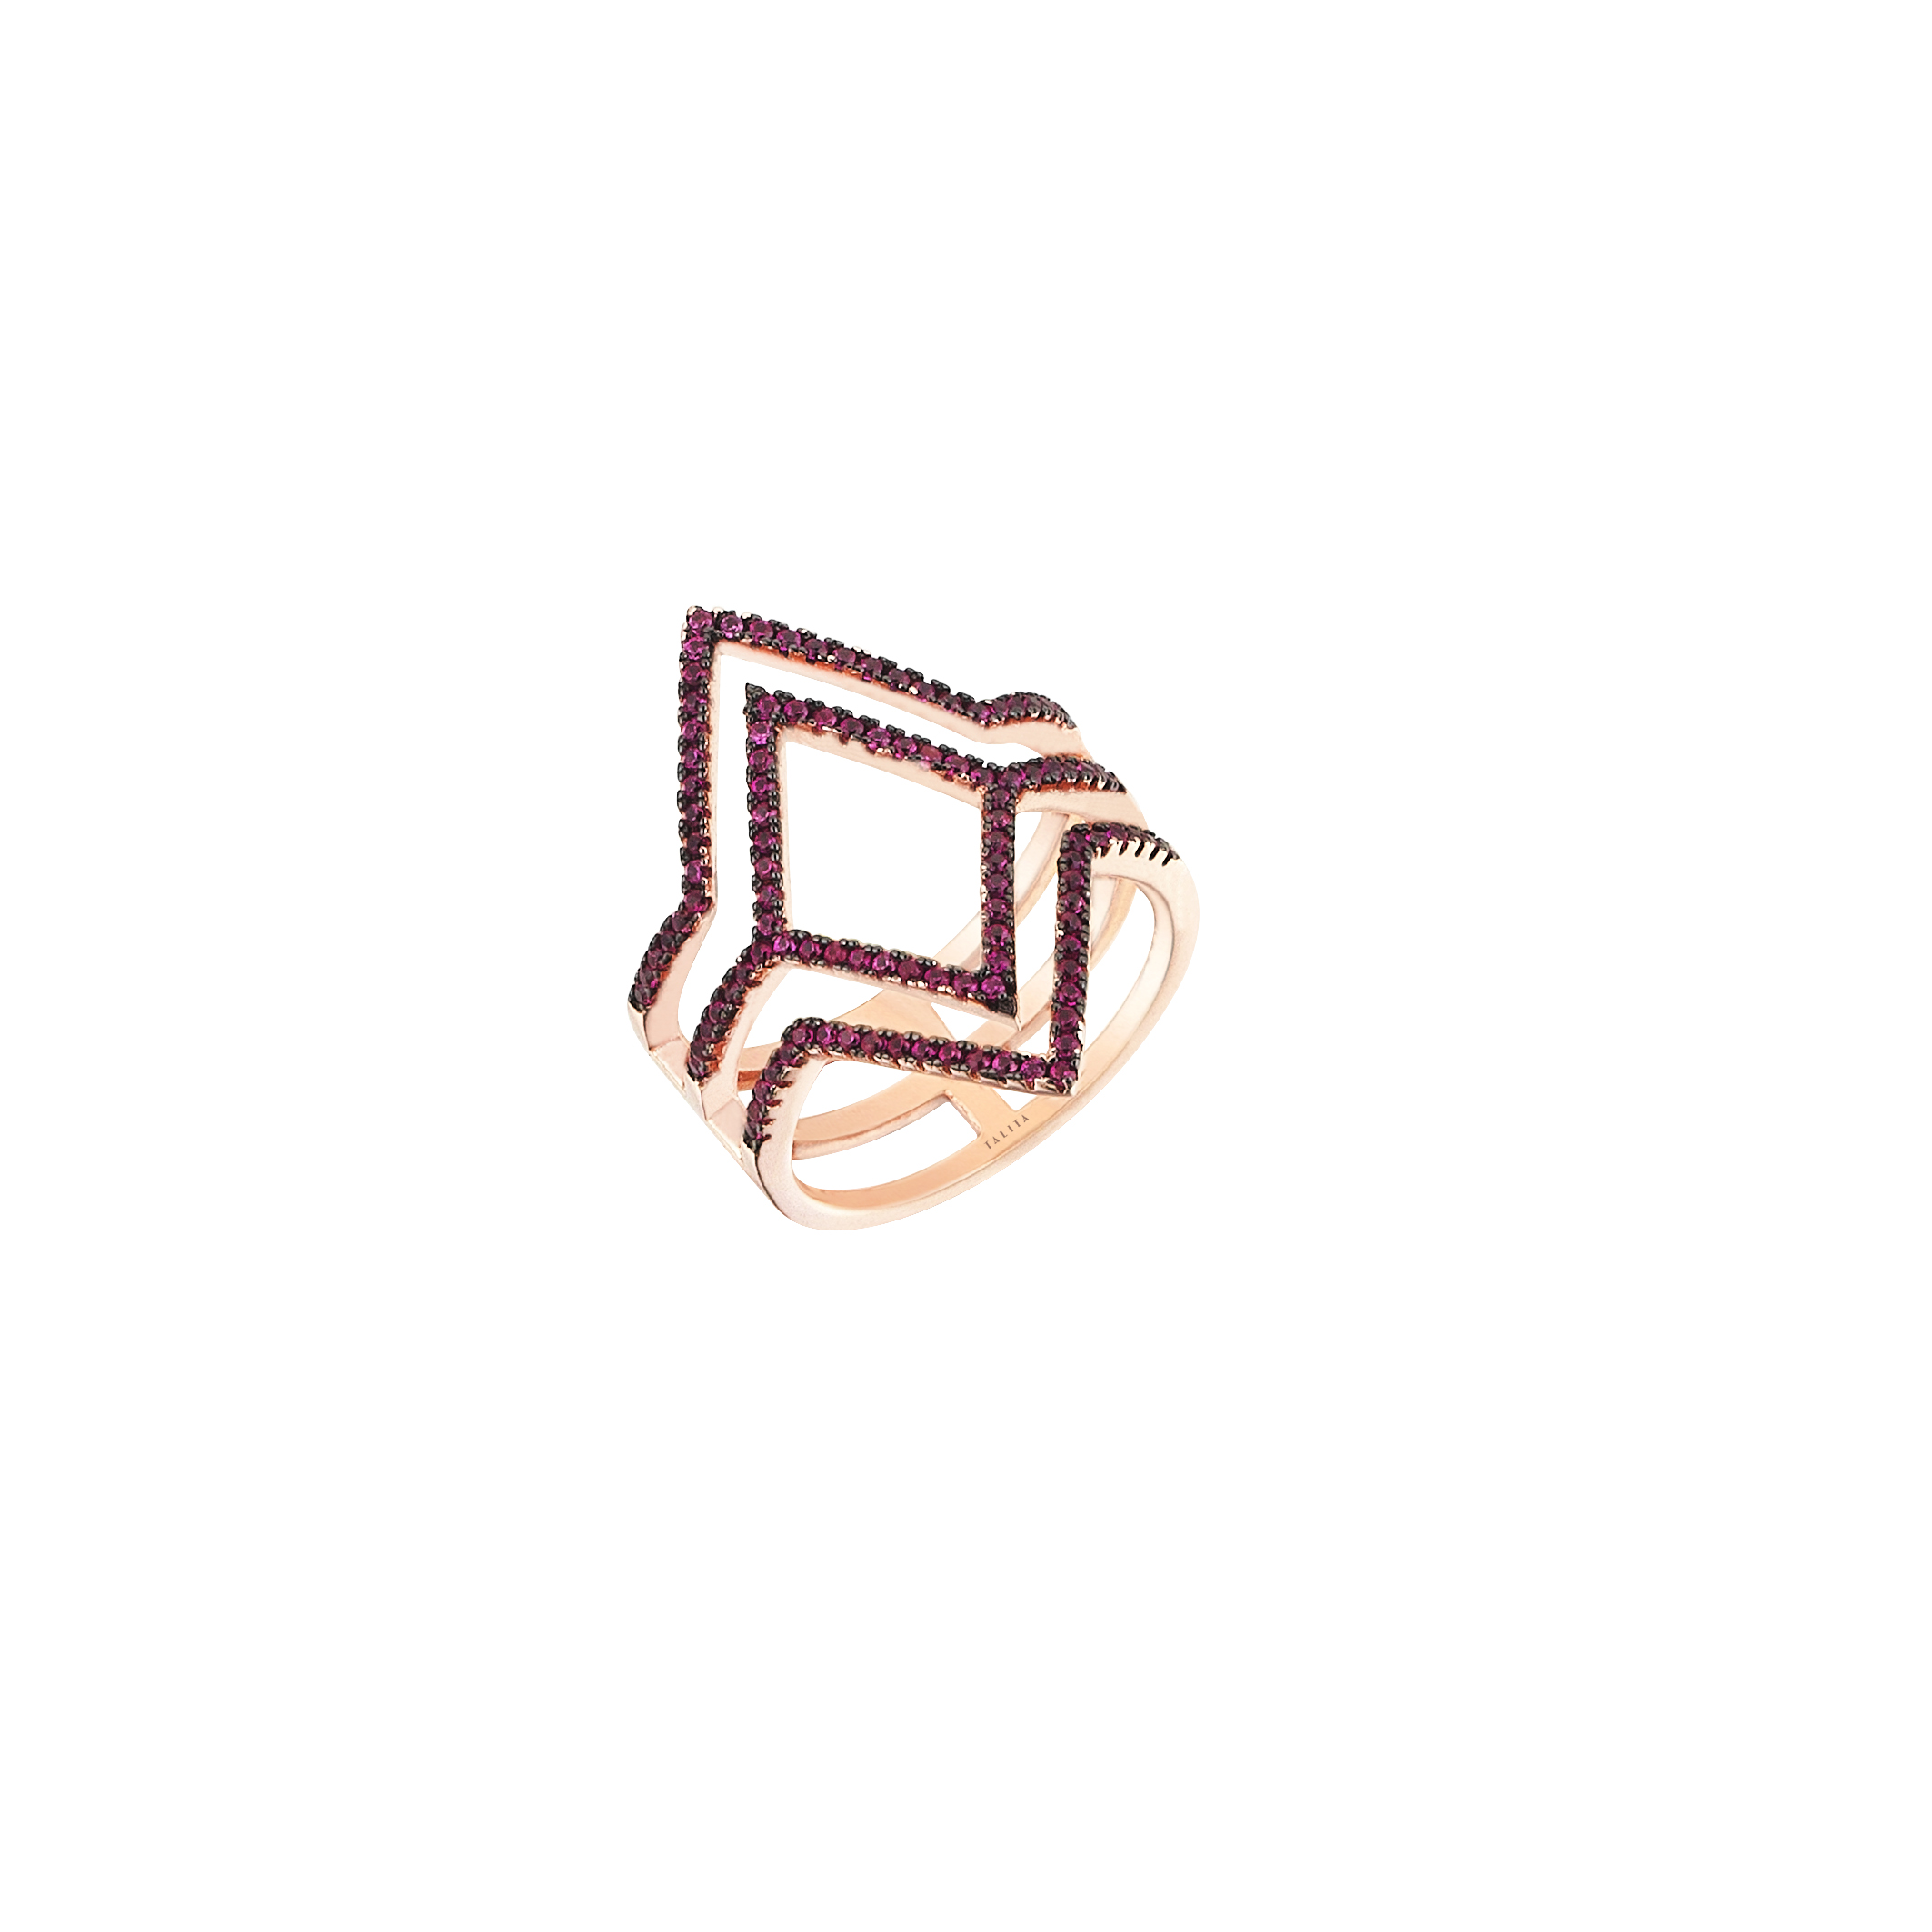 Prism Ring by Talita London on curated-crowd.com